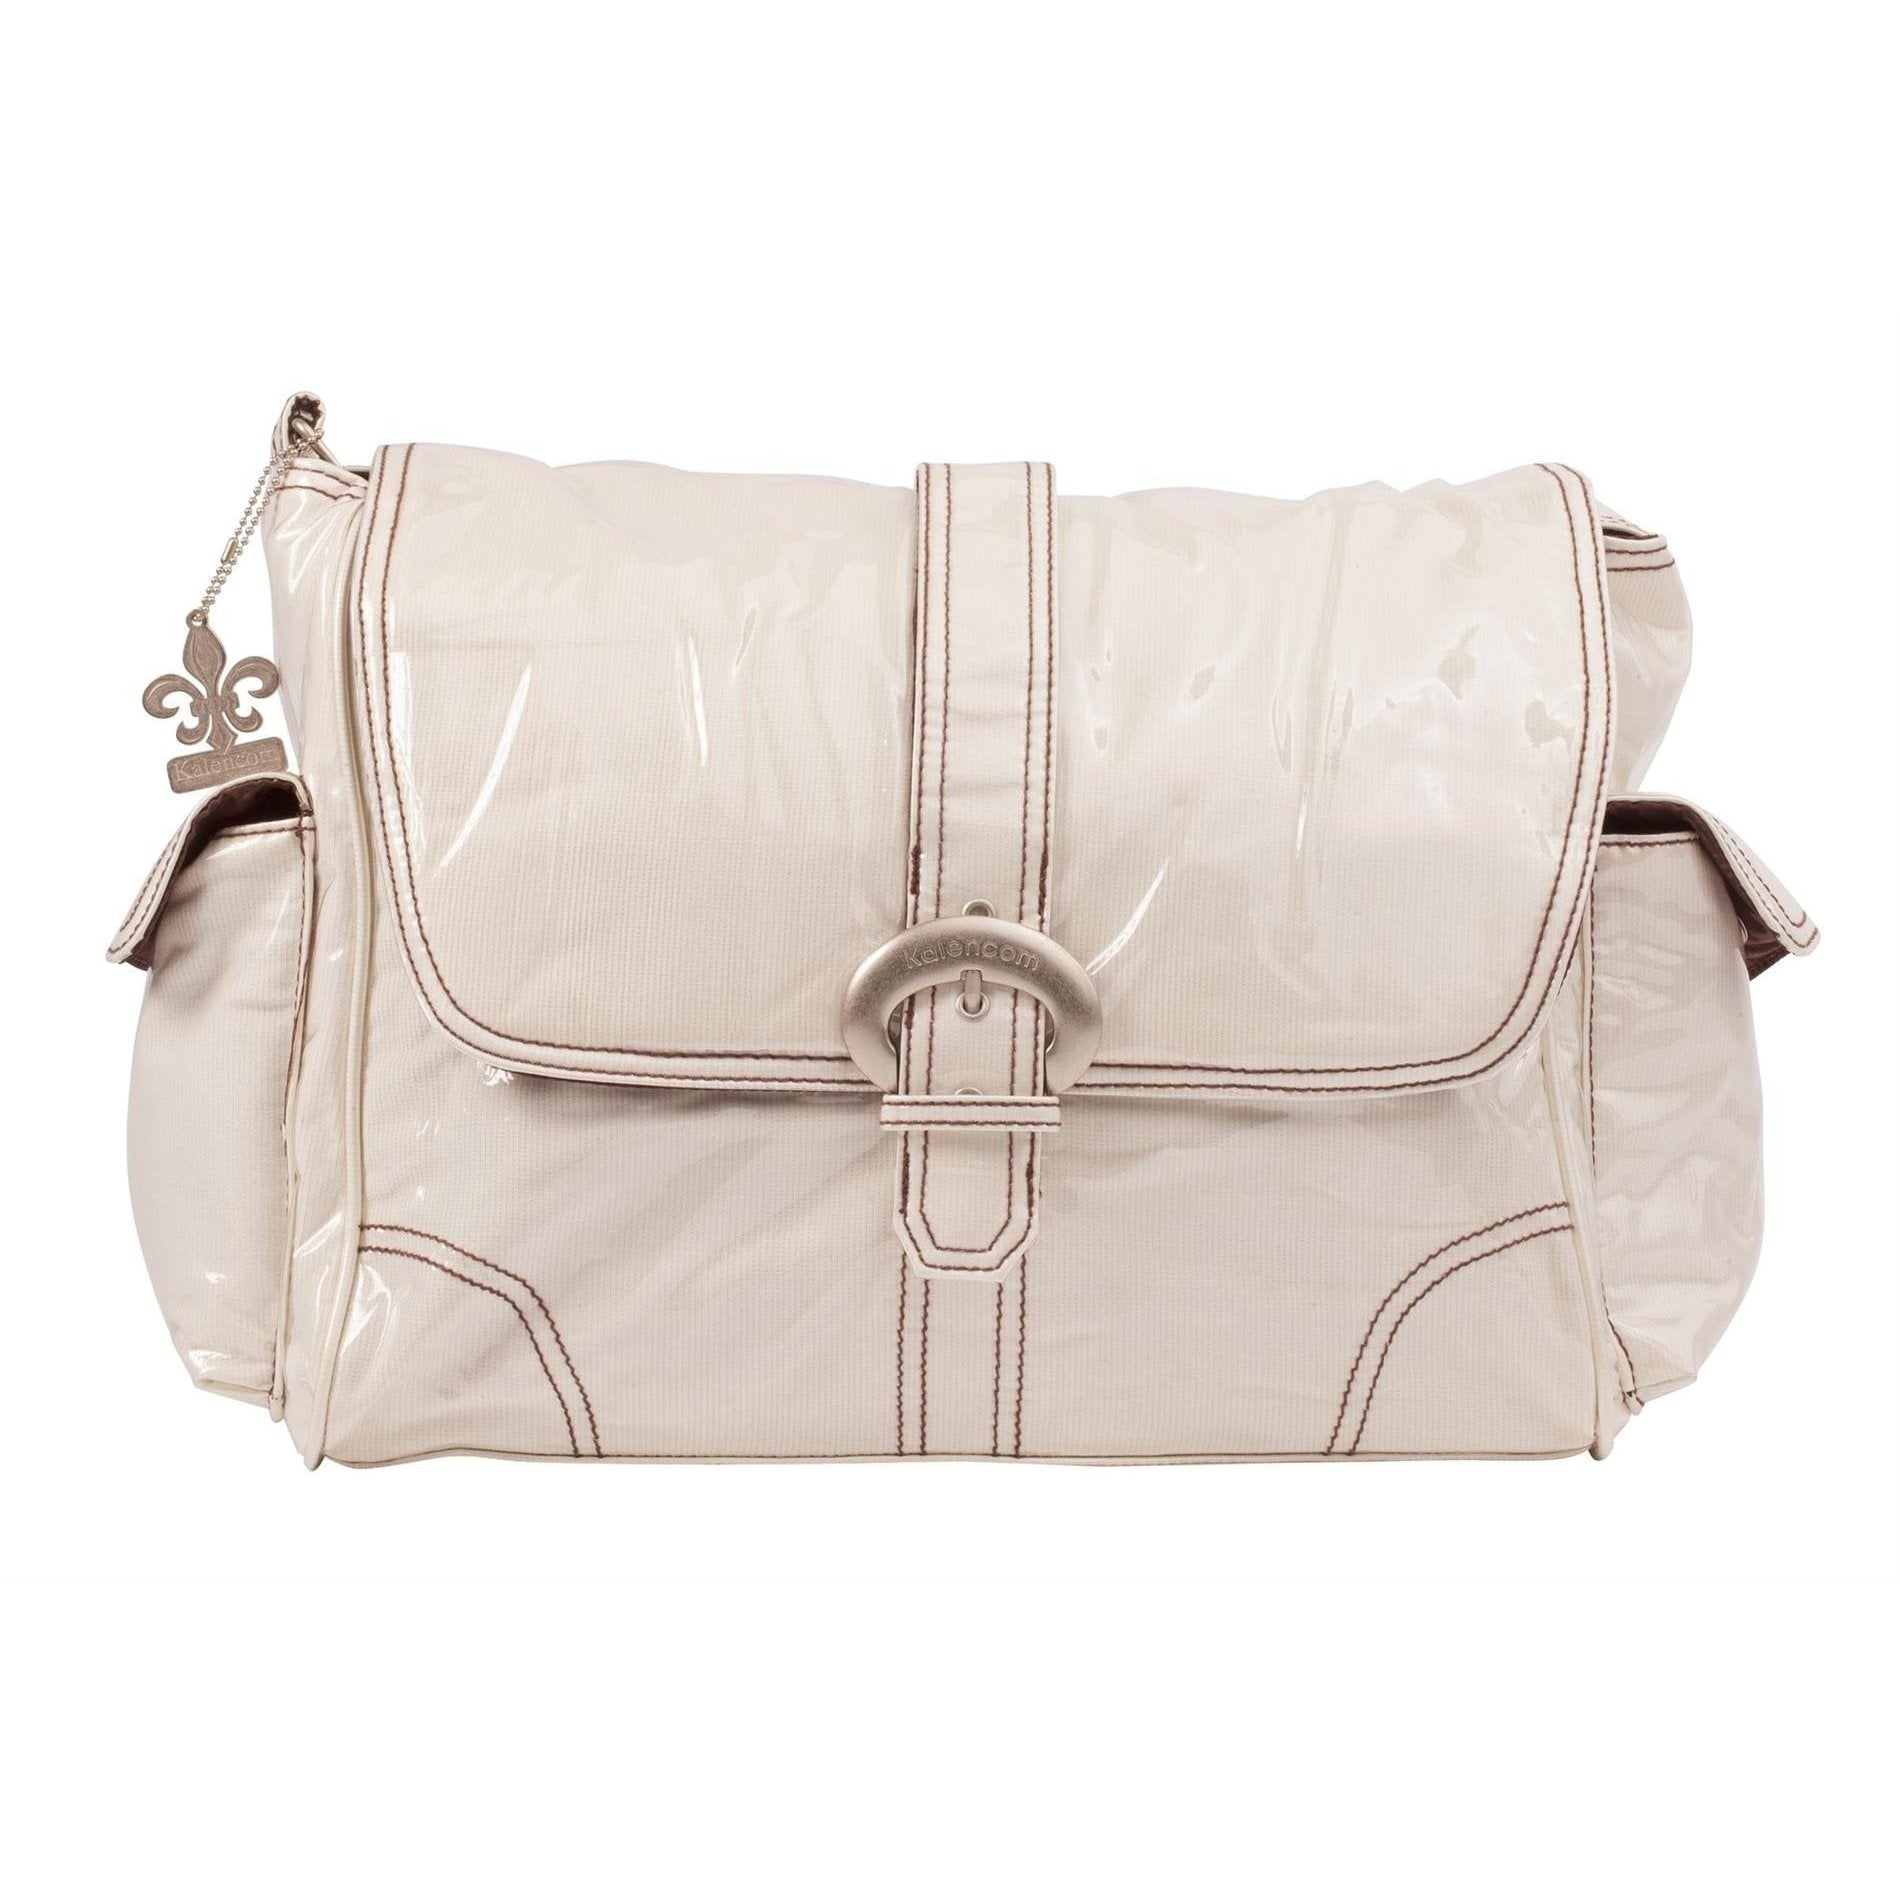 Cream Corduroy Laminated Buckle Diaper Bag | Style 2960 - Kalencom-Diaper Bags-Jack and Jill Boutique